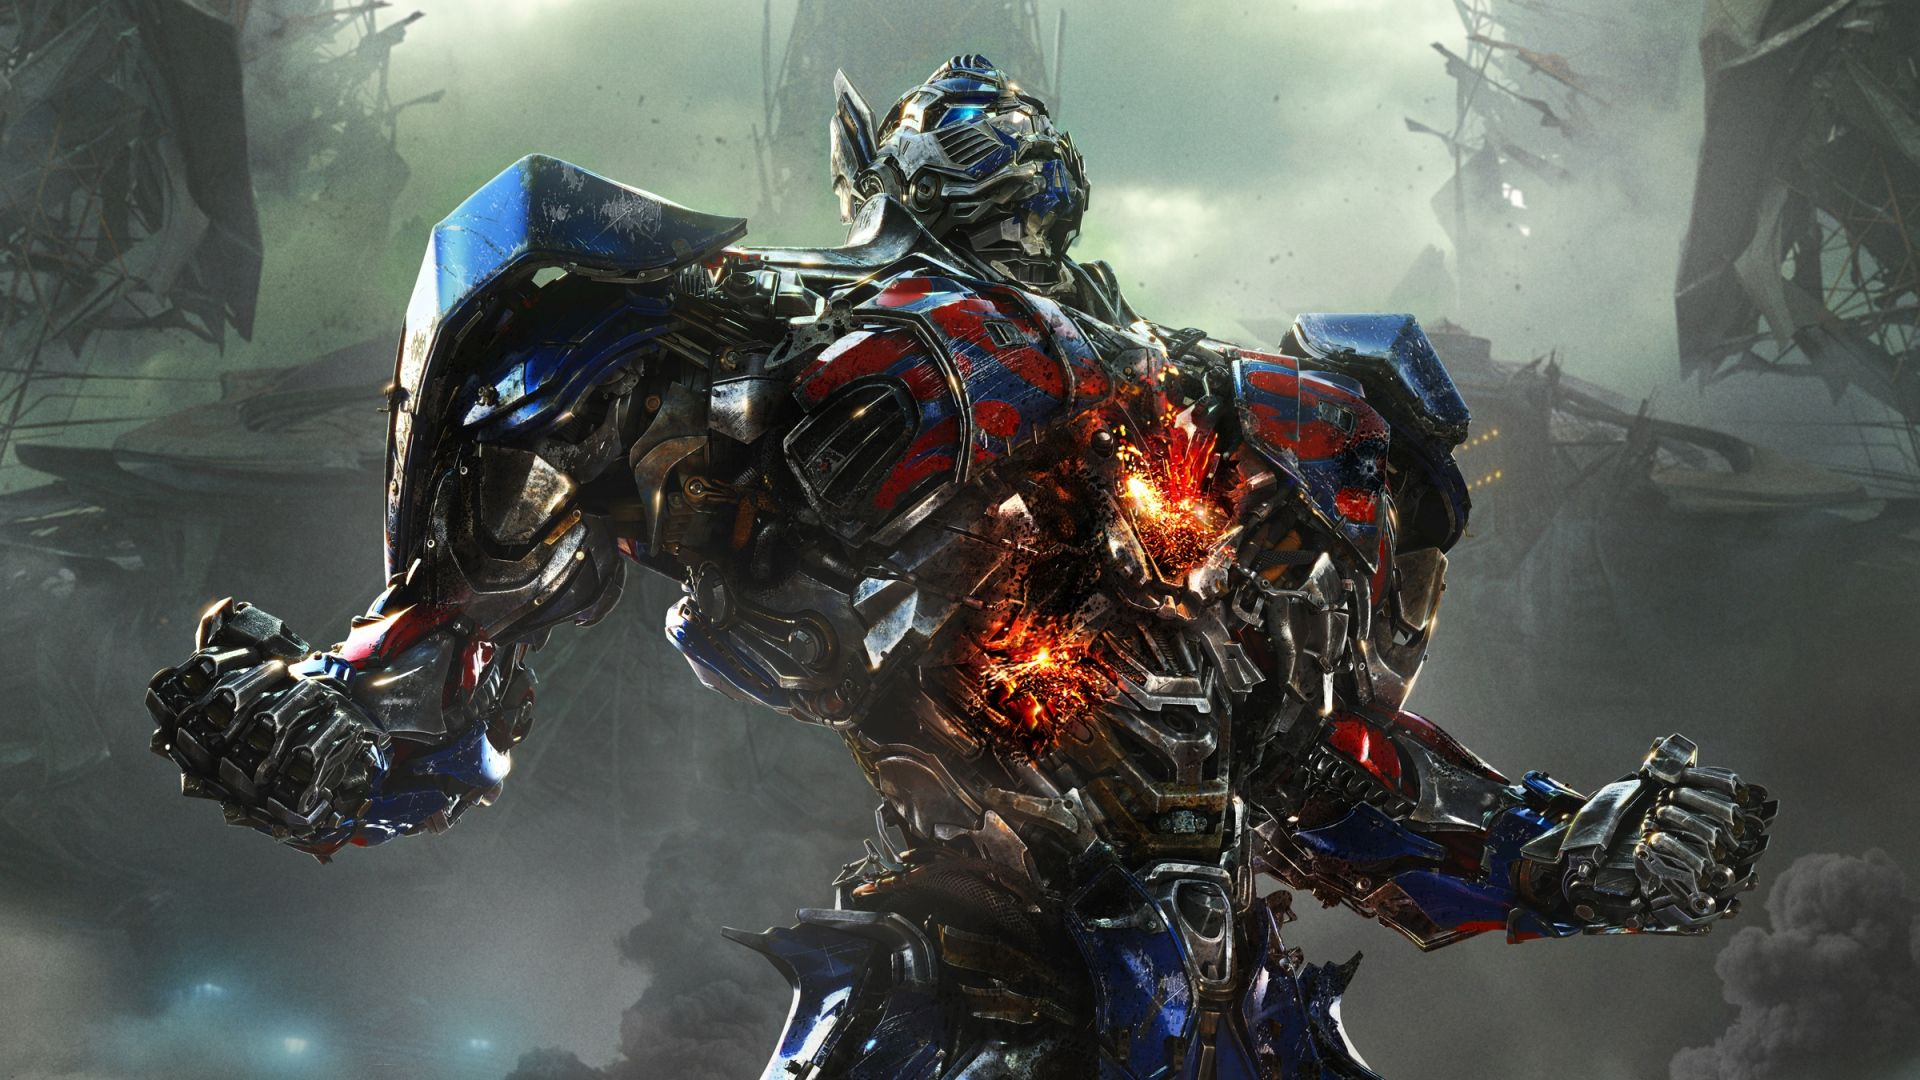 optimus prime wallpaper 4k